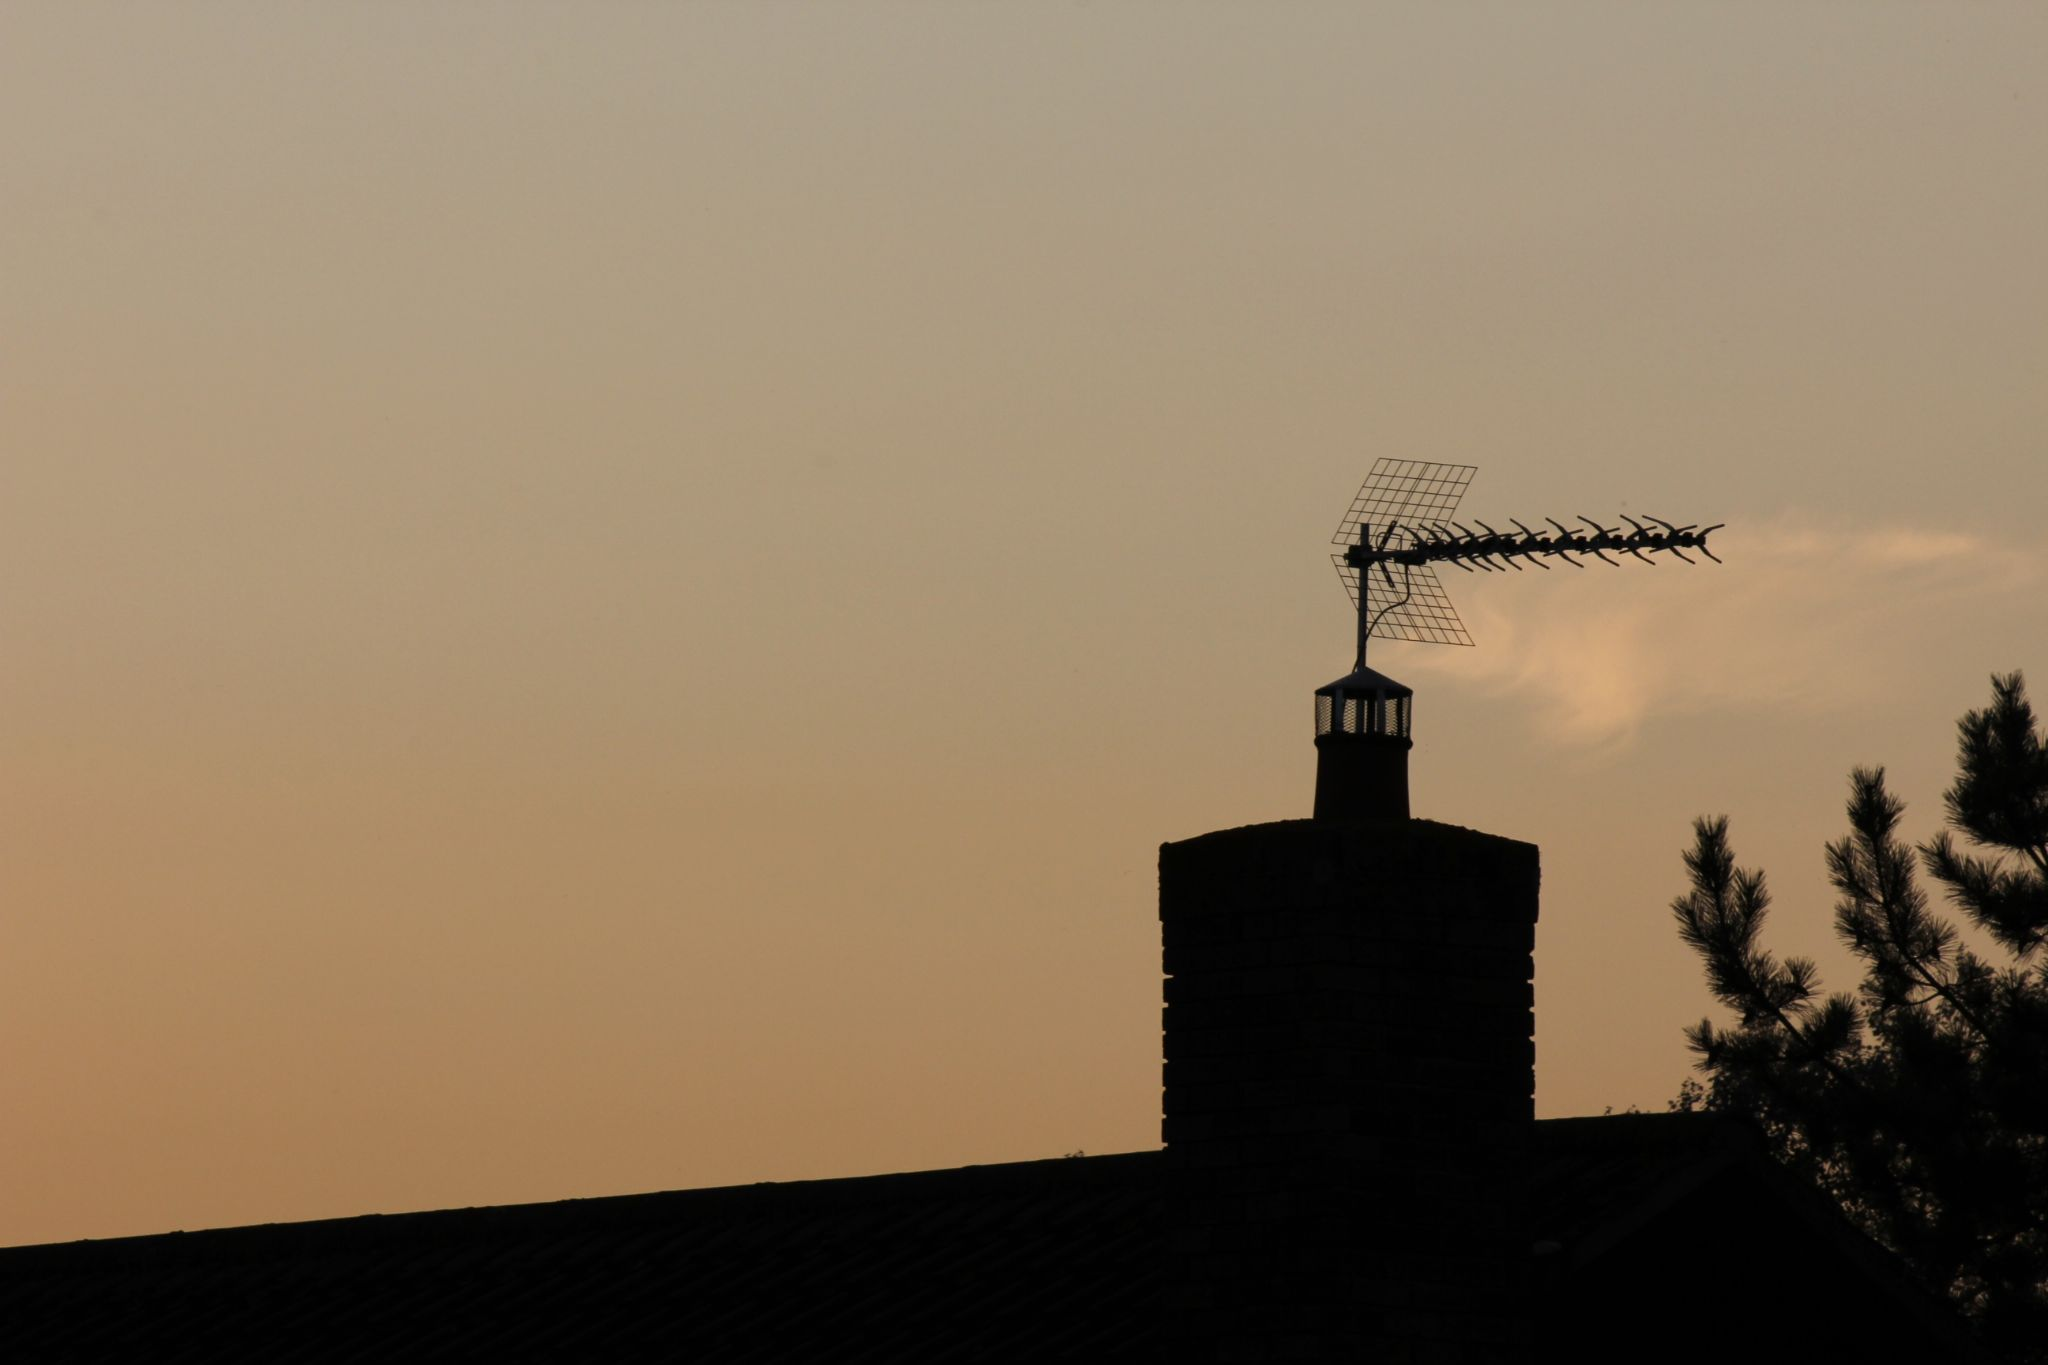 Chimney Silhouette by Tyler Nightingale